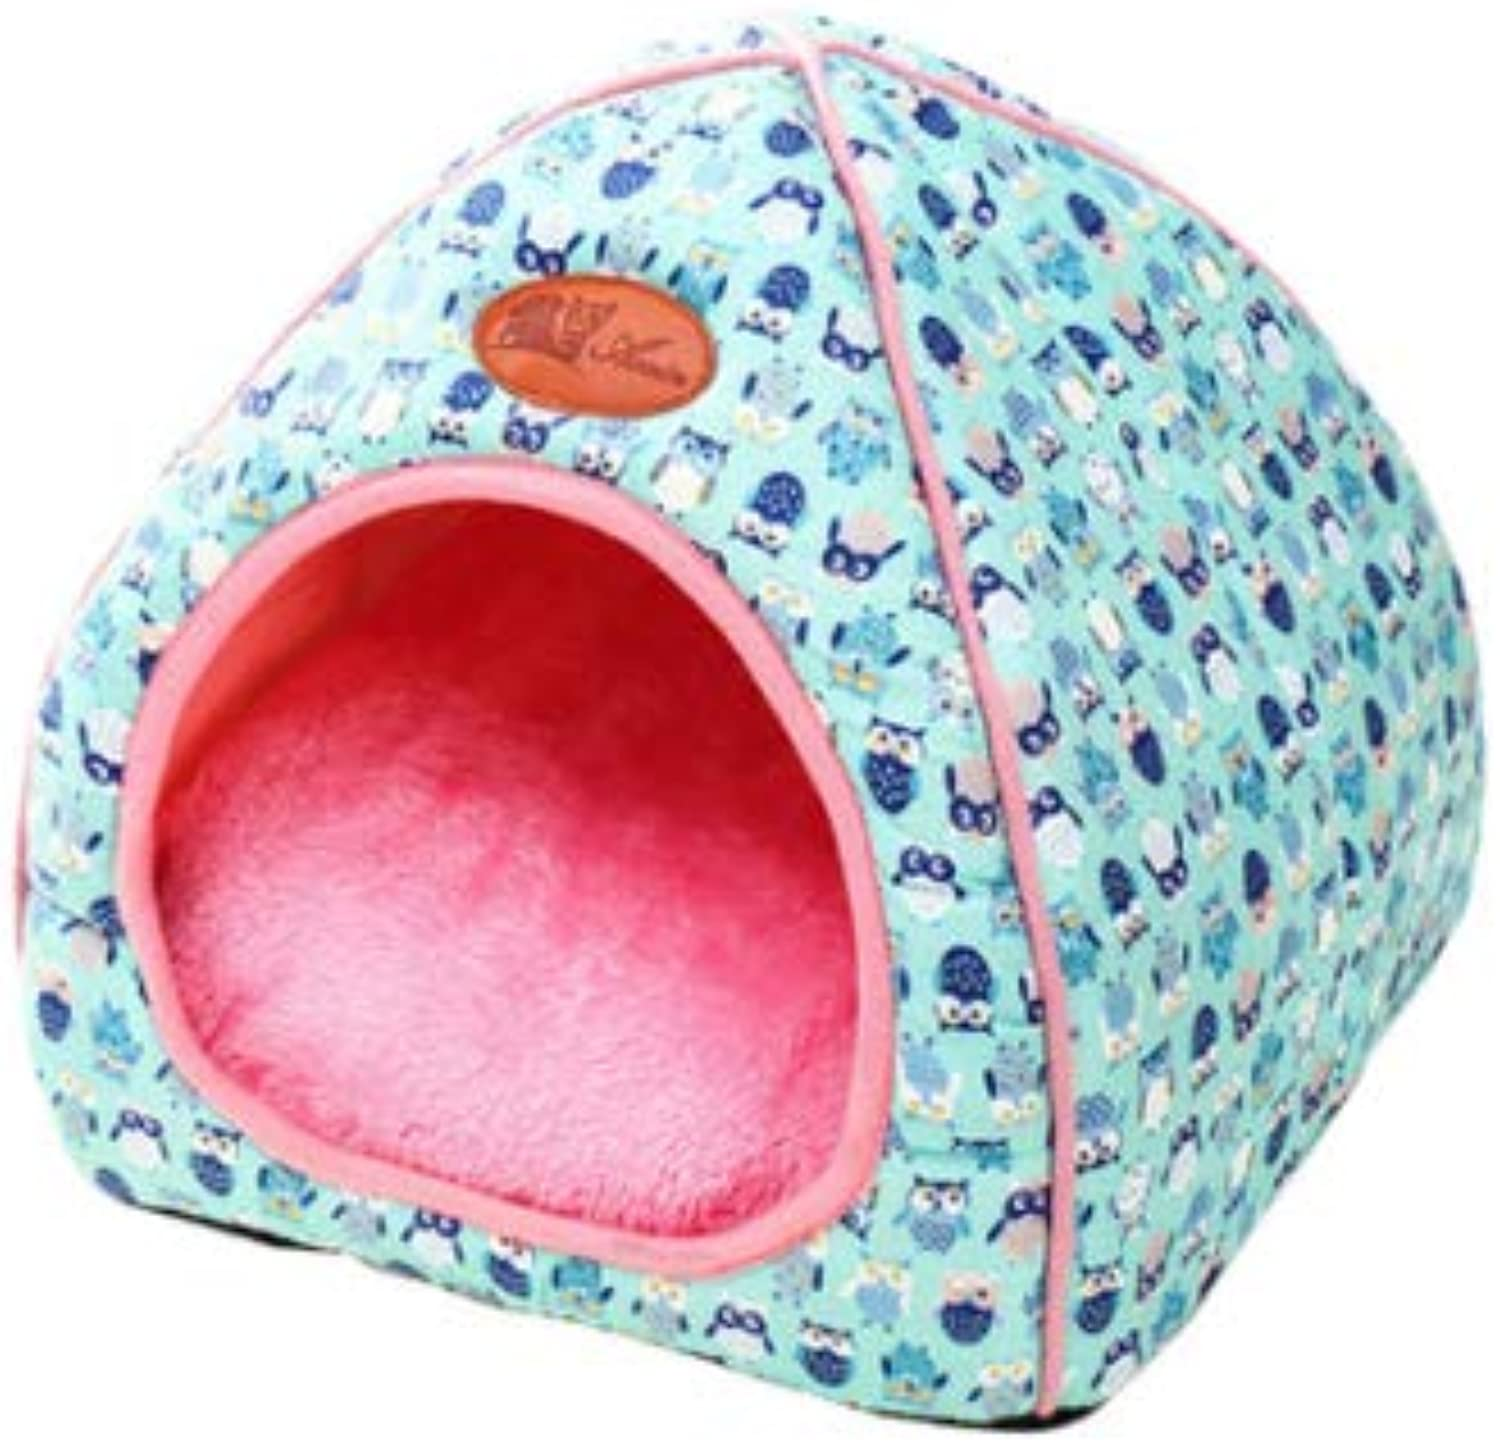 Cookisn 1PC Pet Dog Bed & Sofa Warming Dog House Soft Dog Nest Winter Kennel for Puppy Cat Plus Size Small Medium Dogs Pet Bule XL